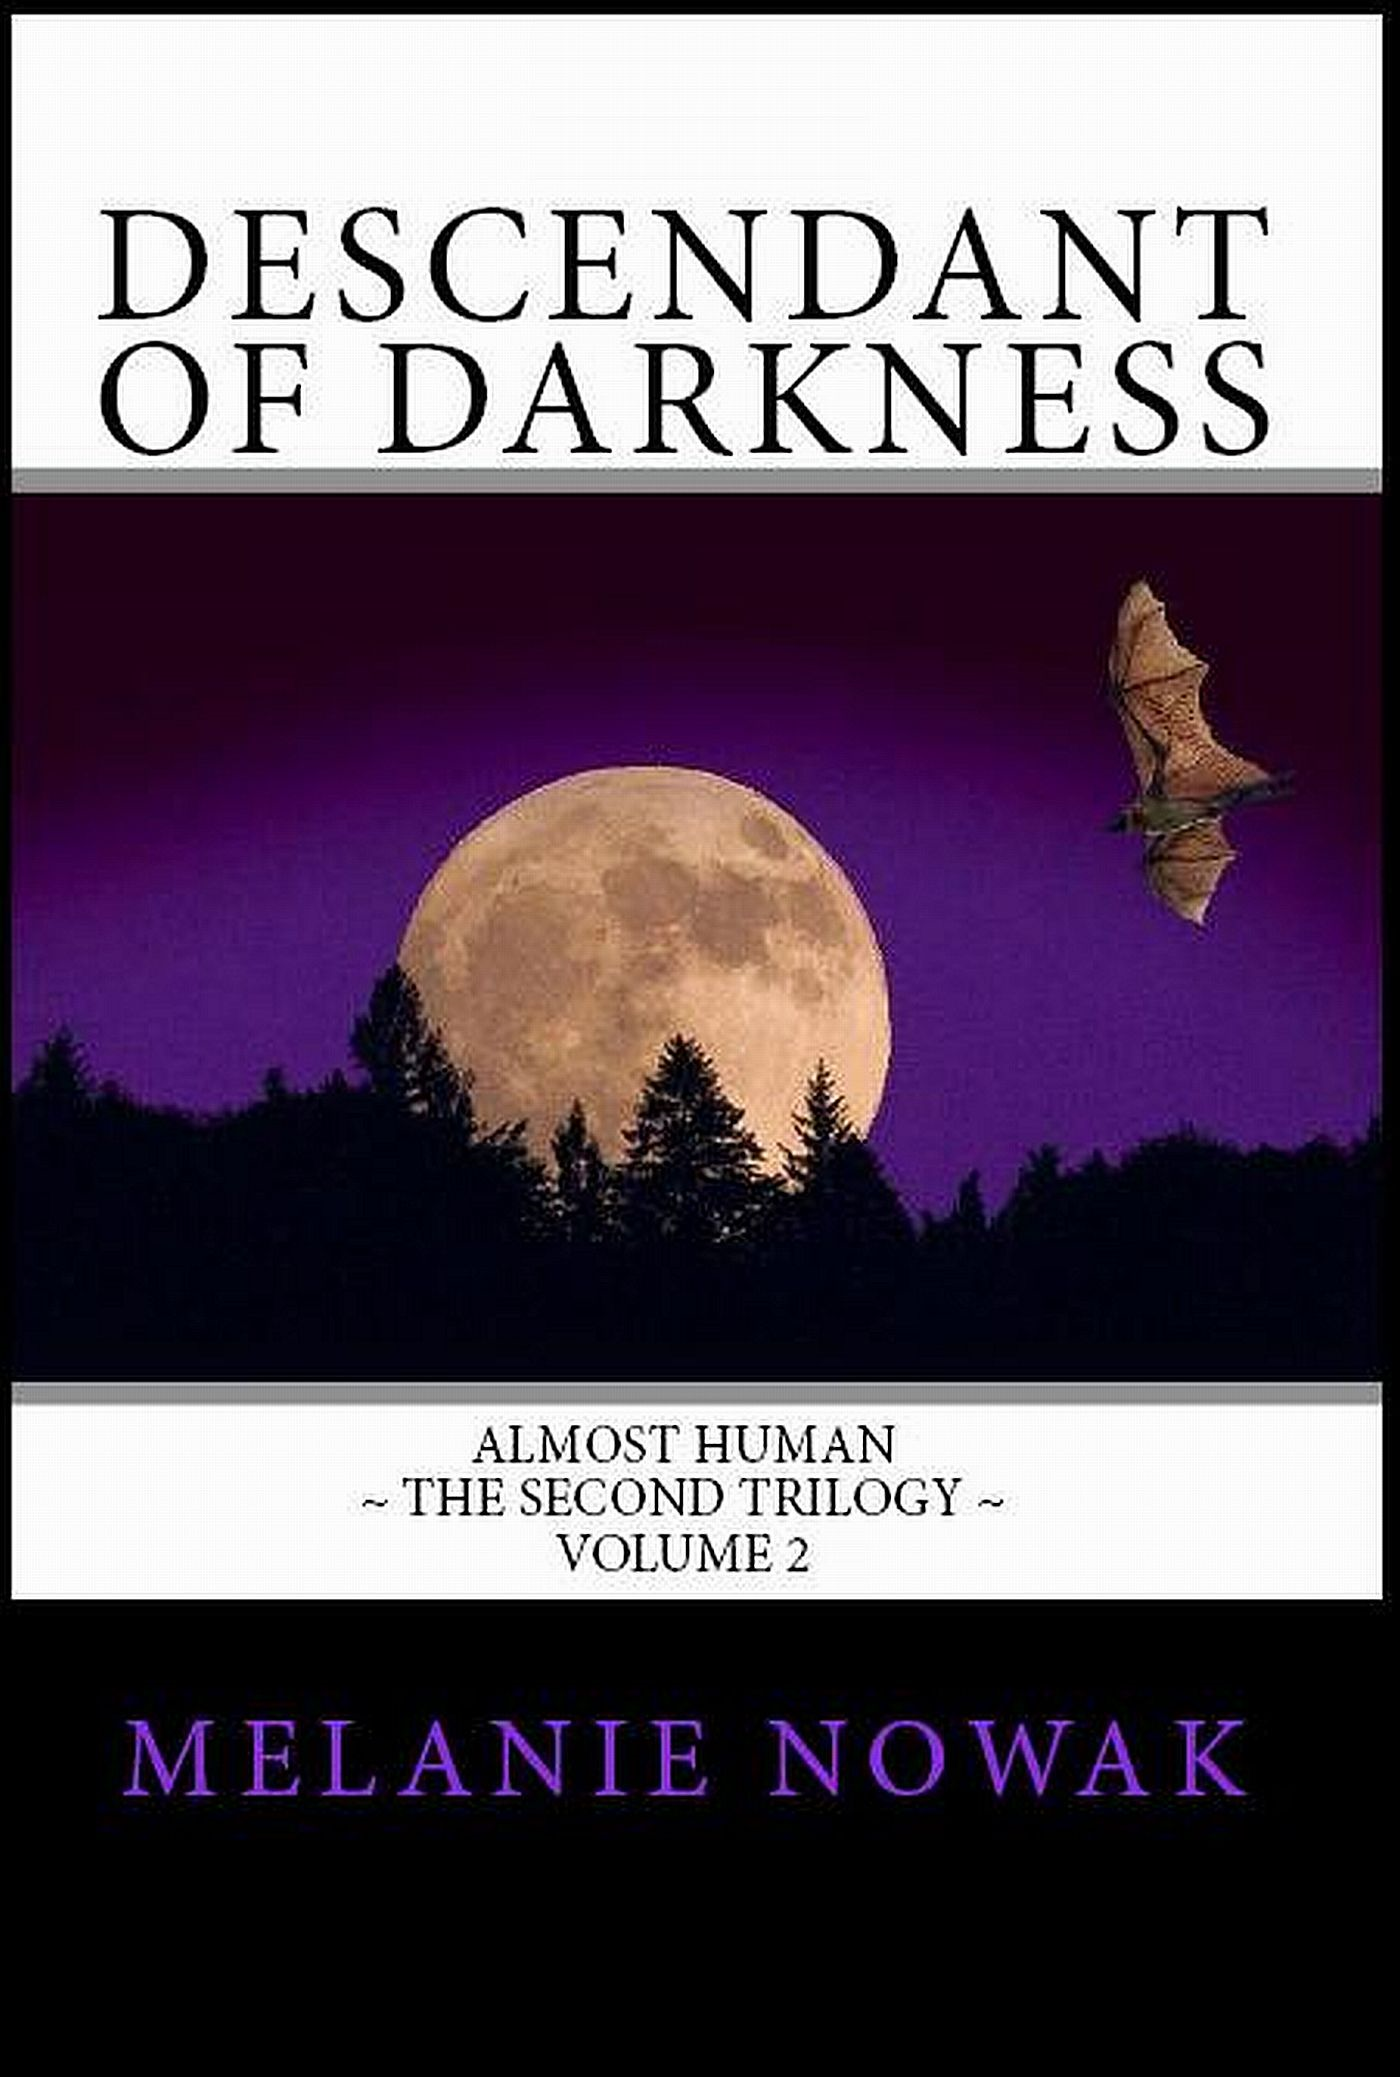 Descendant of Darkness: Volume 2 of ALMOST HUMAN ~ The Second Trilogy